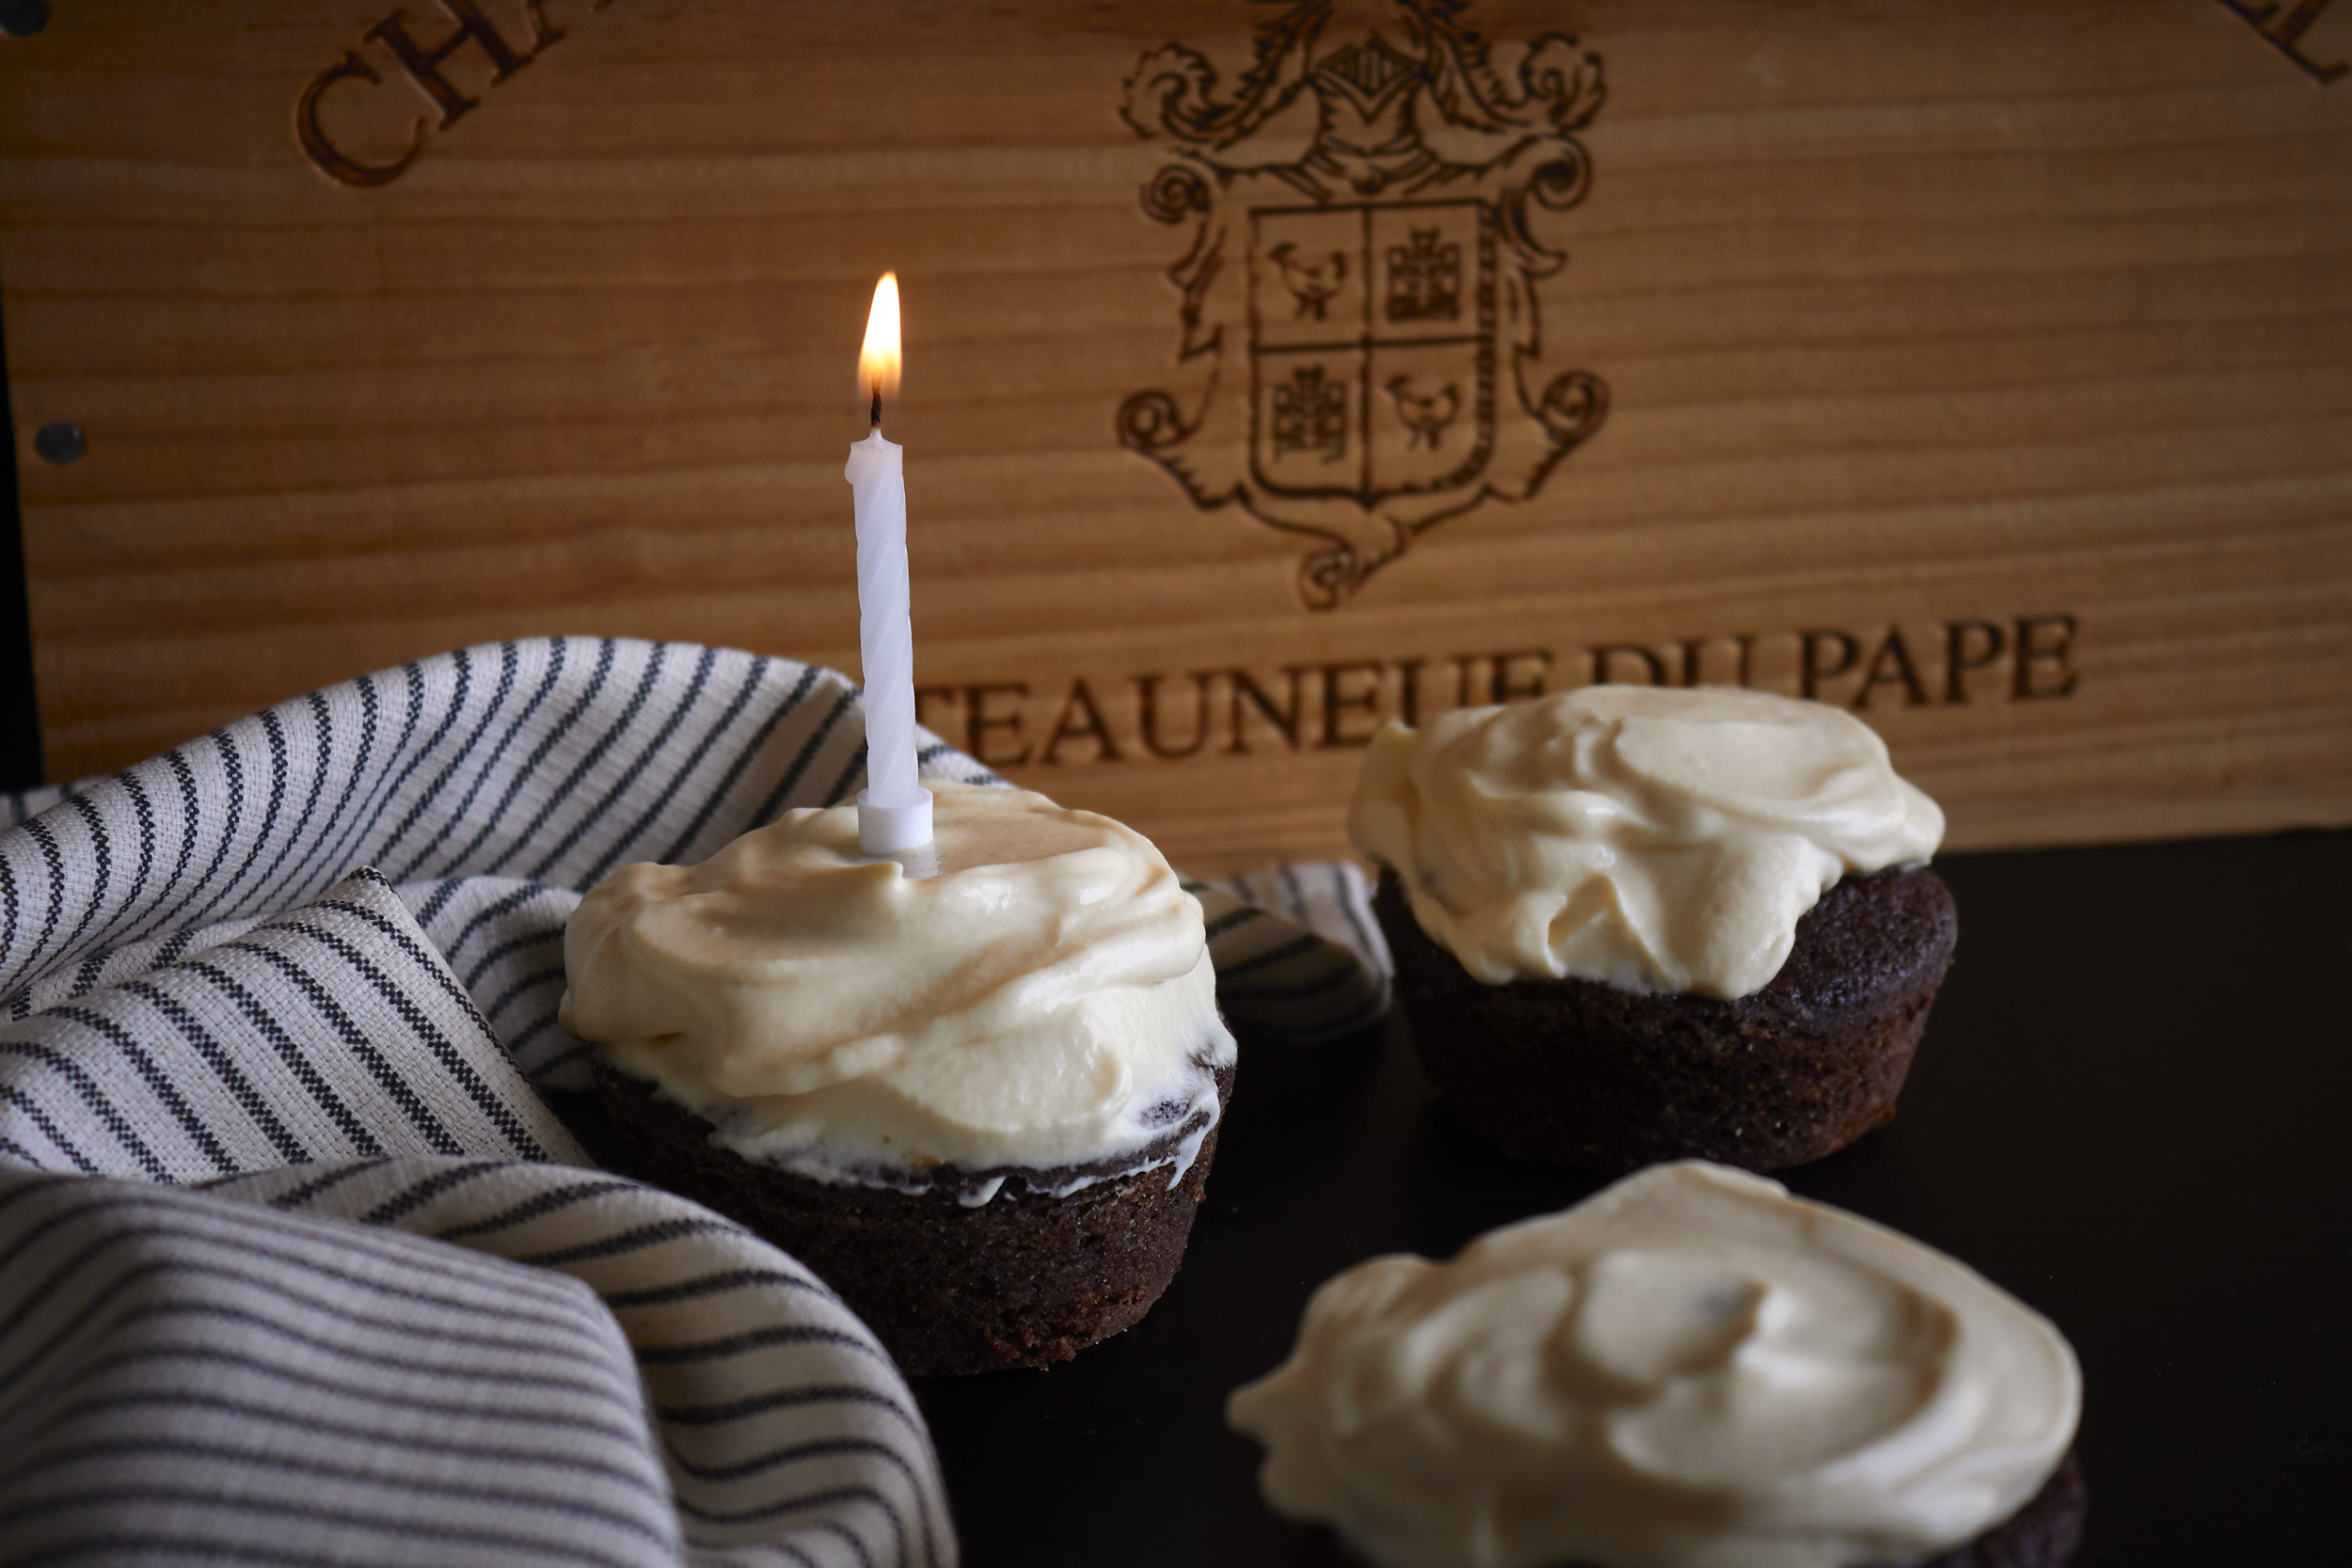 Chocolate & Guinness Cupcakes with Bailey's Frosting - these are great for birthdays and celebrations | In Carina's Kitchen